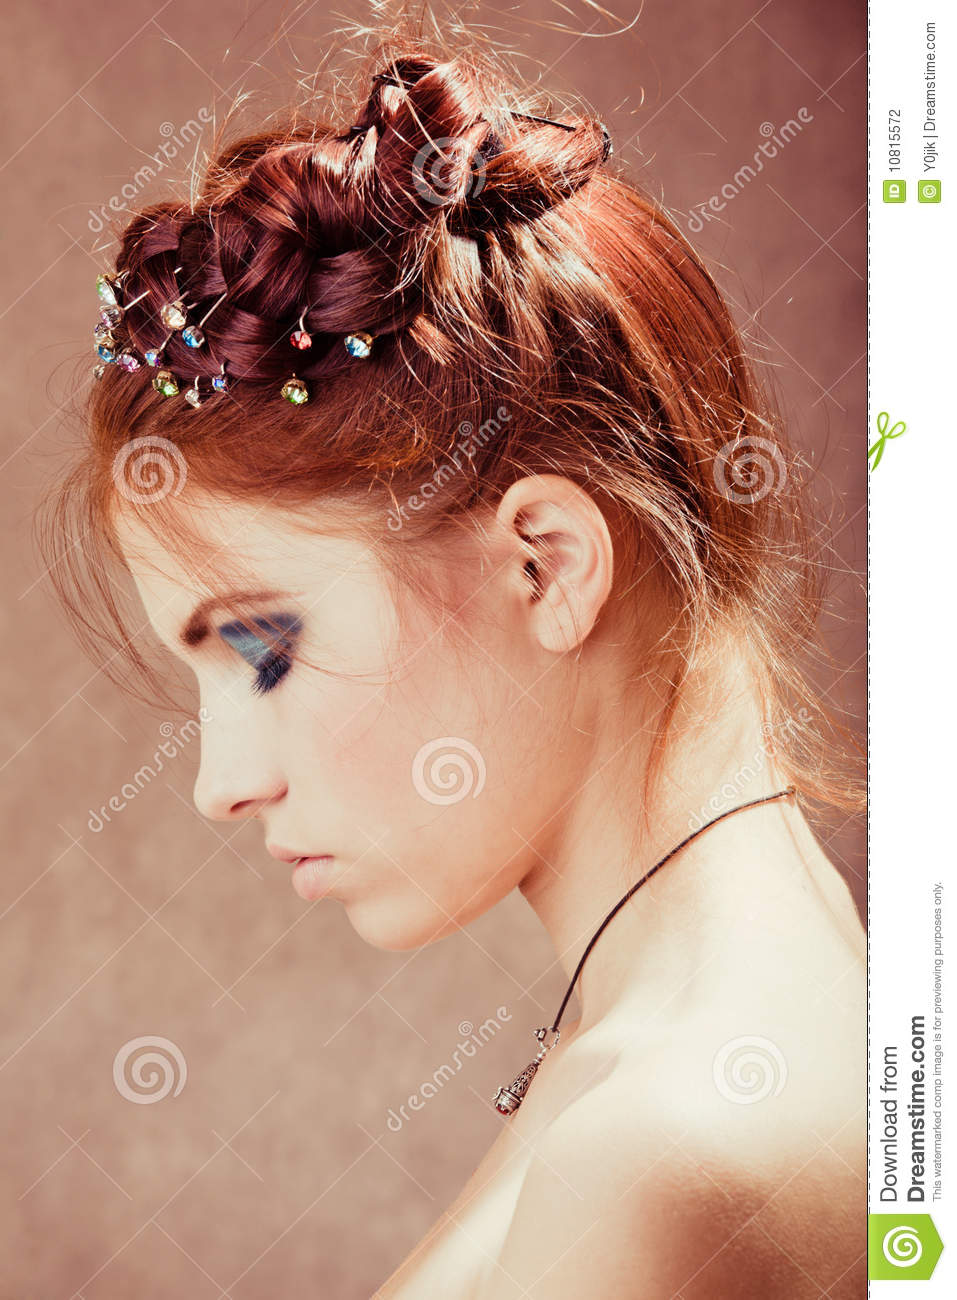 young girl with red hair stock photo image of forest young girl with red hair stock photo image of beautiful